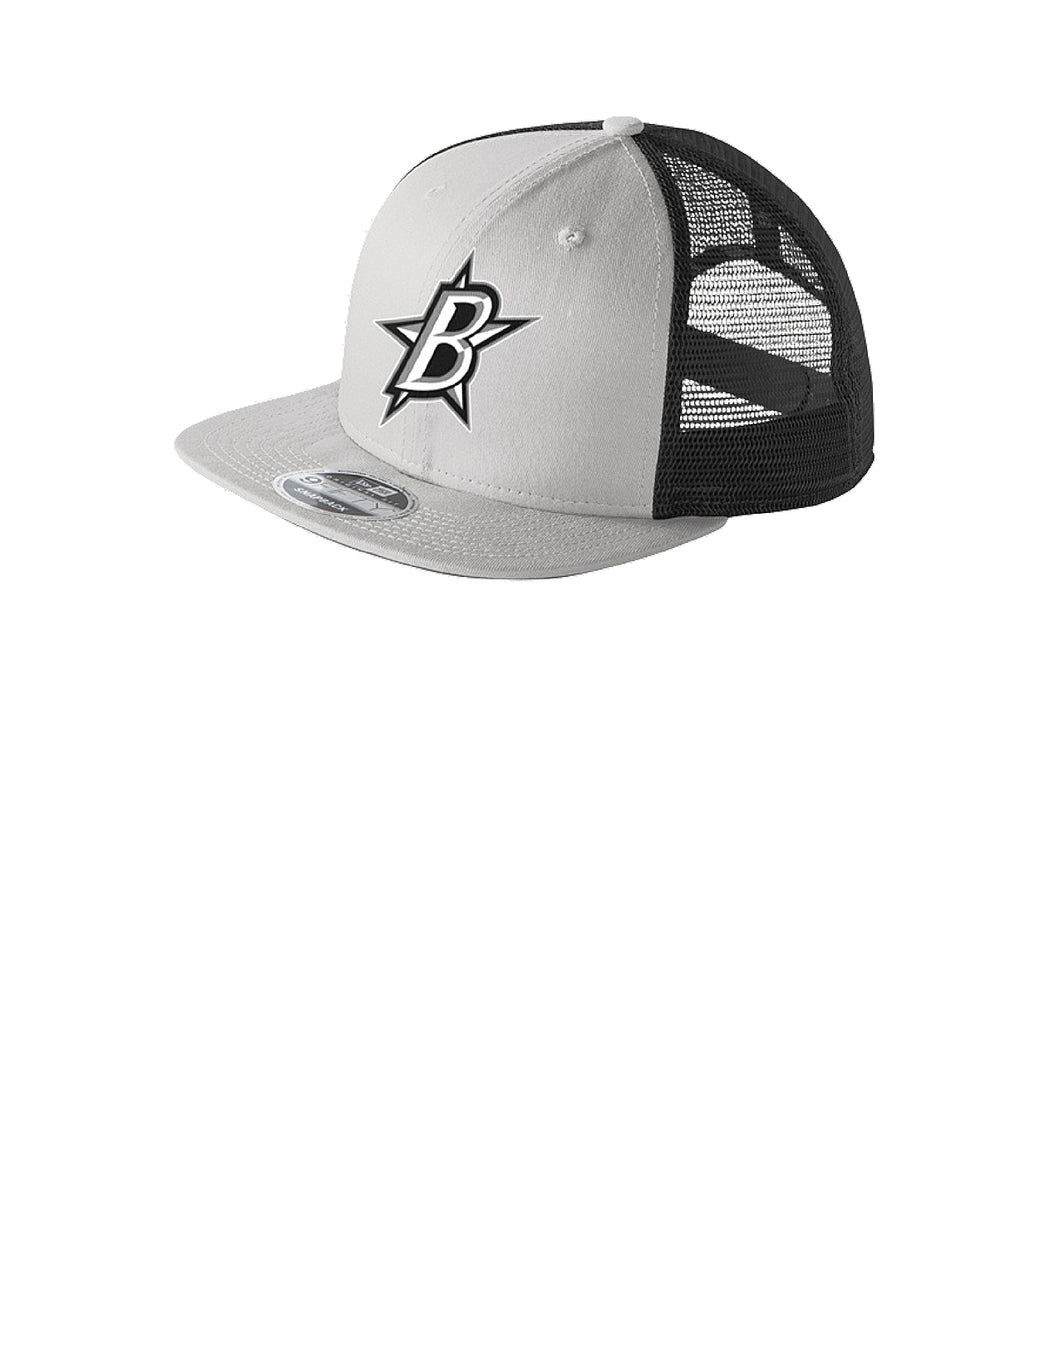 Black Stars New Era® Original Fit Flat Brim Snapback Trucker Cap Grey/Graphite With Black Stars